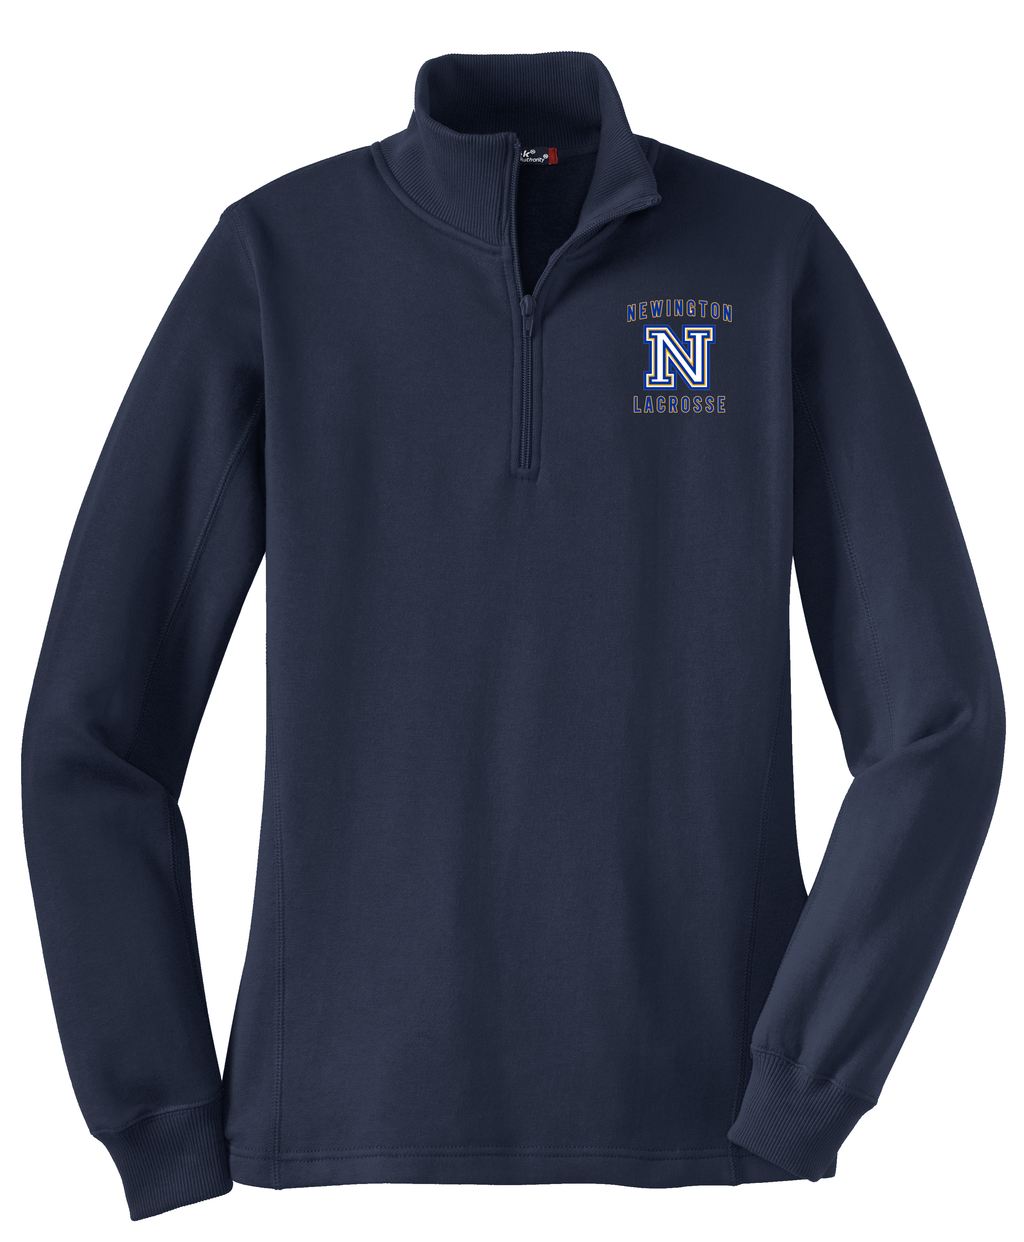 Newington Lacrosse Women's 1/4 Zip Fleece